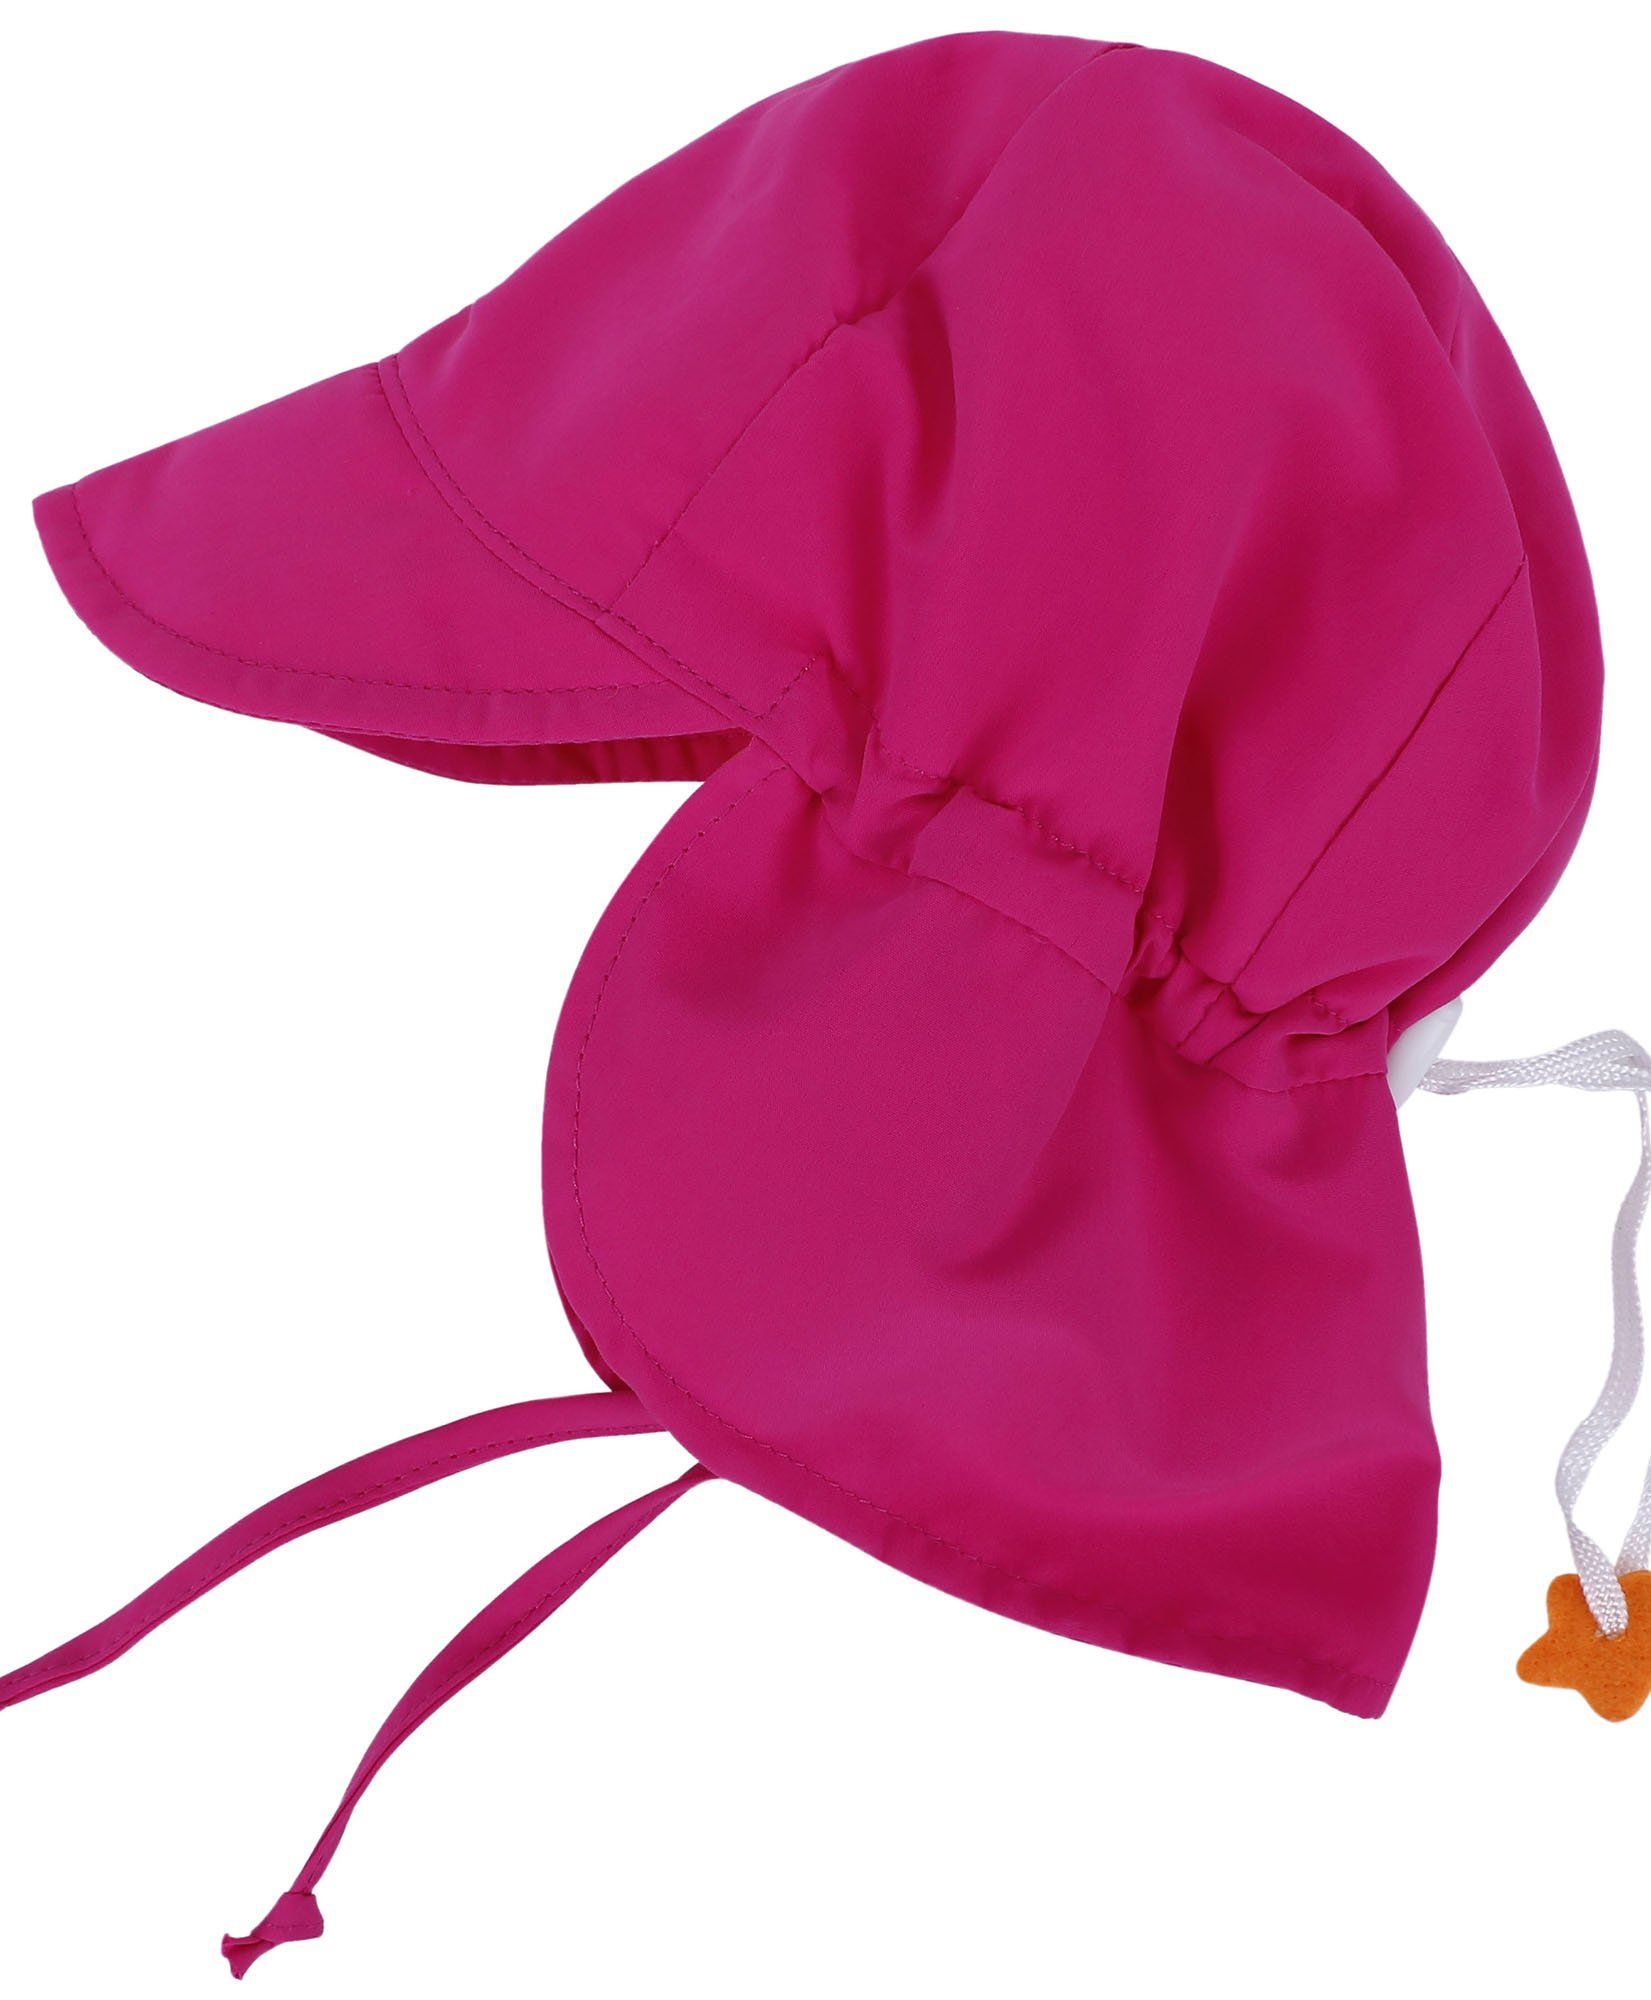 SimpliKids UPF 50+ UV Ray Sun Protection Baby Hat w/ Neck Flap & Drawstring,Rose Pink,12-24Months